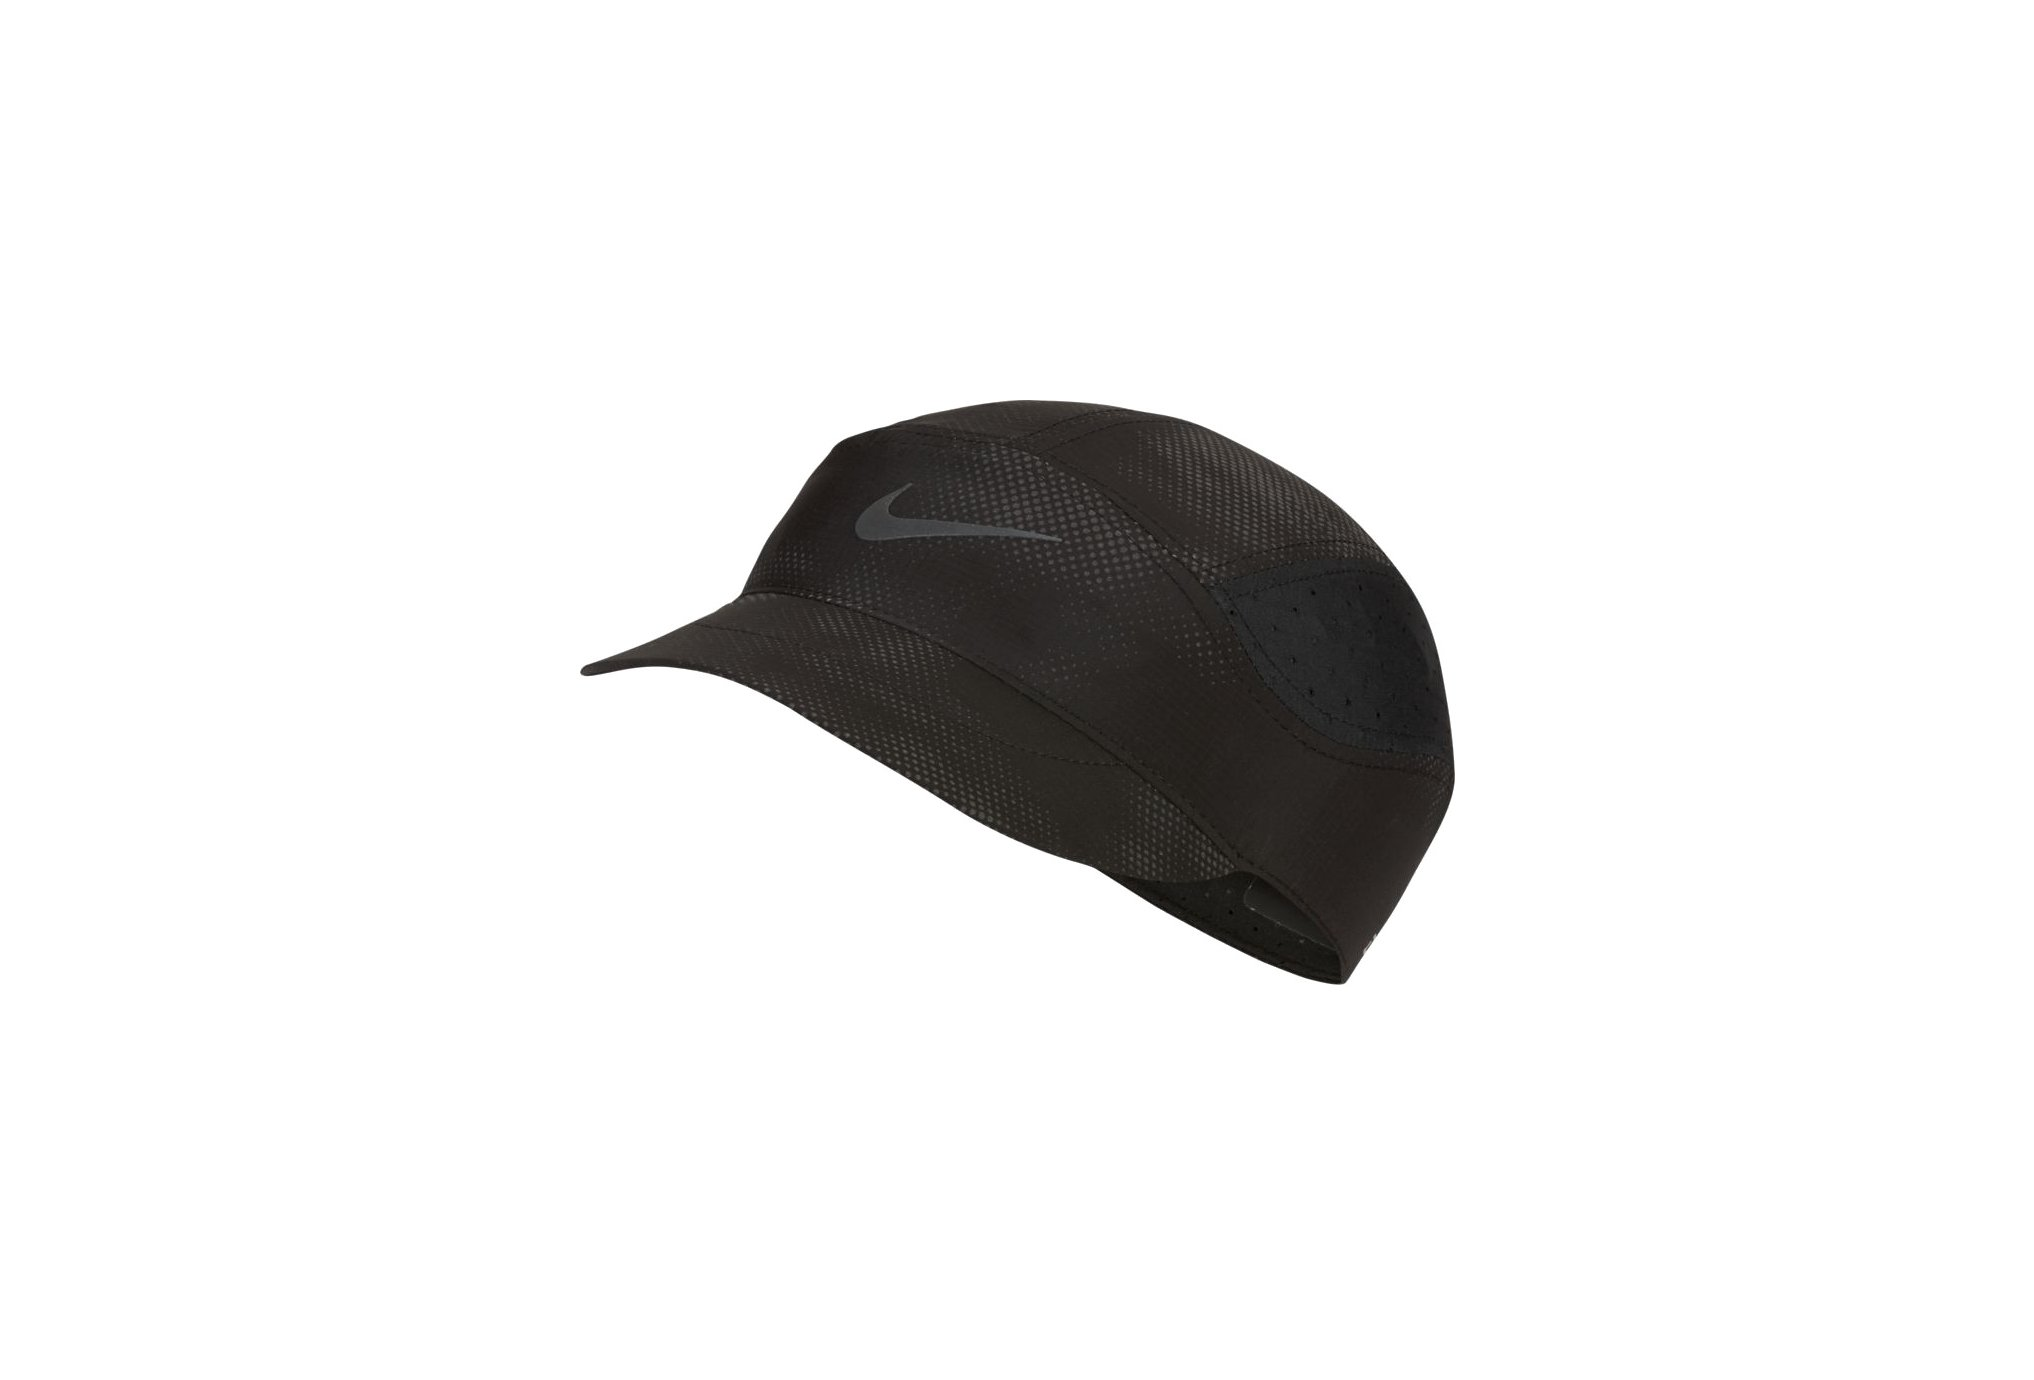 Nike Aerobill Tailwind Flash Casquettes / bandeaux